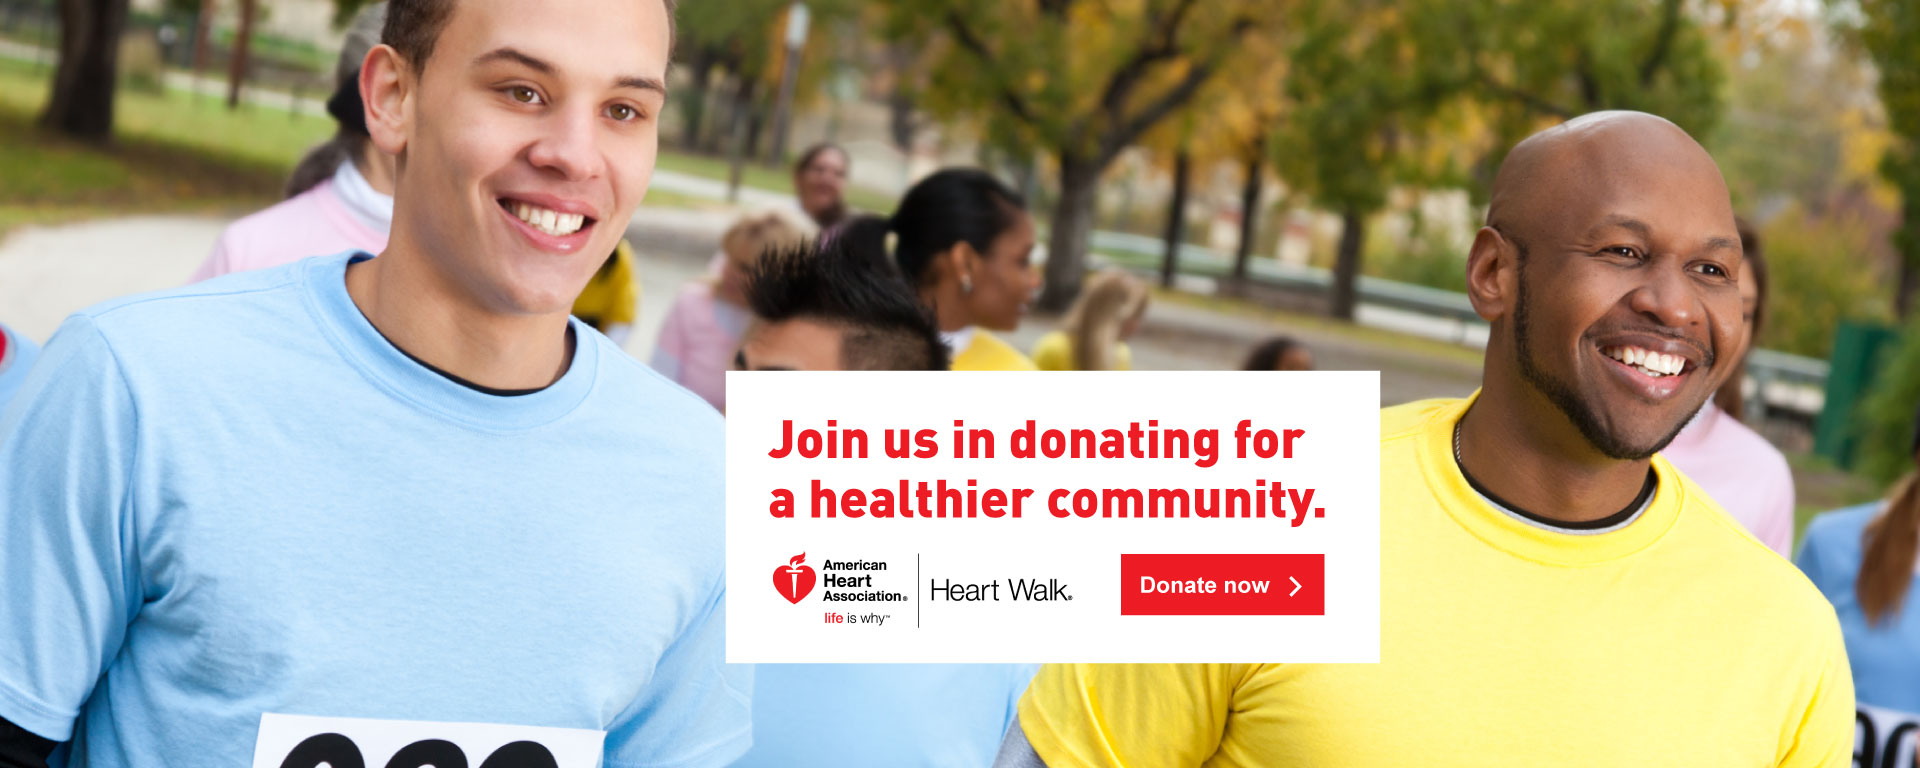 American Heart Association - HeartWalk Drive